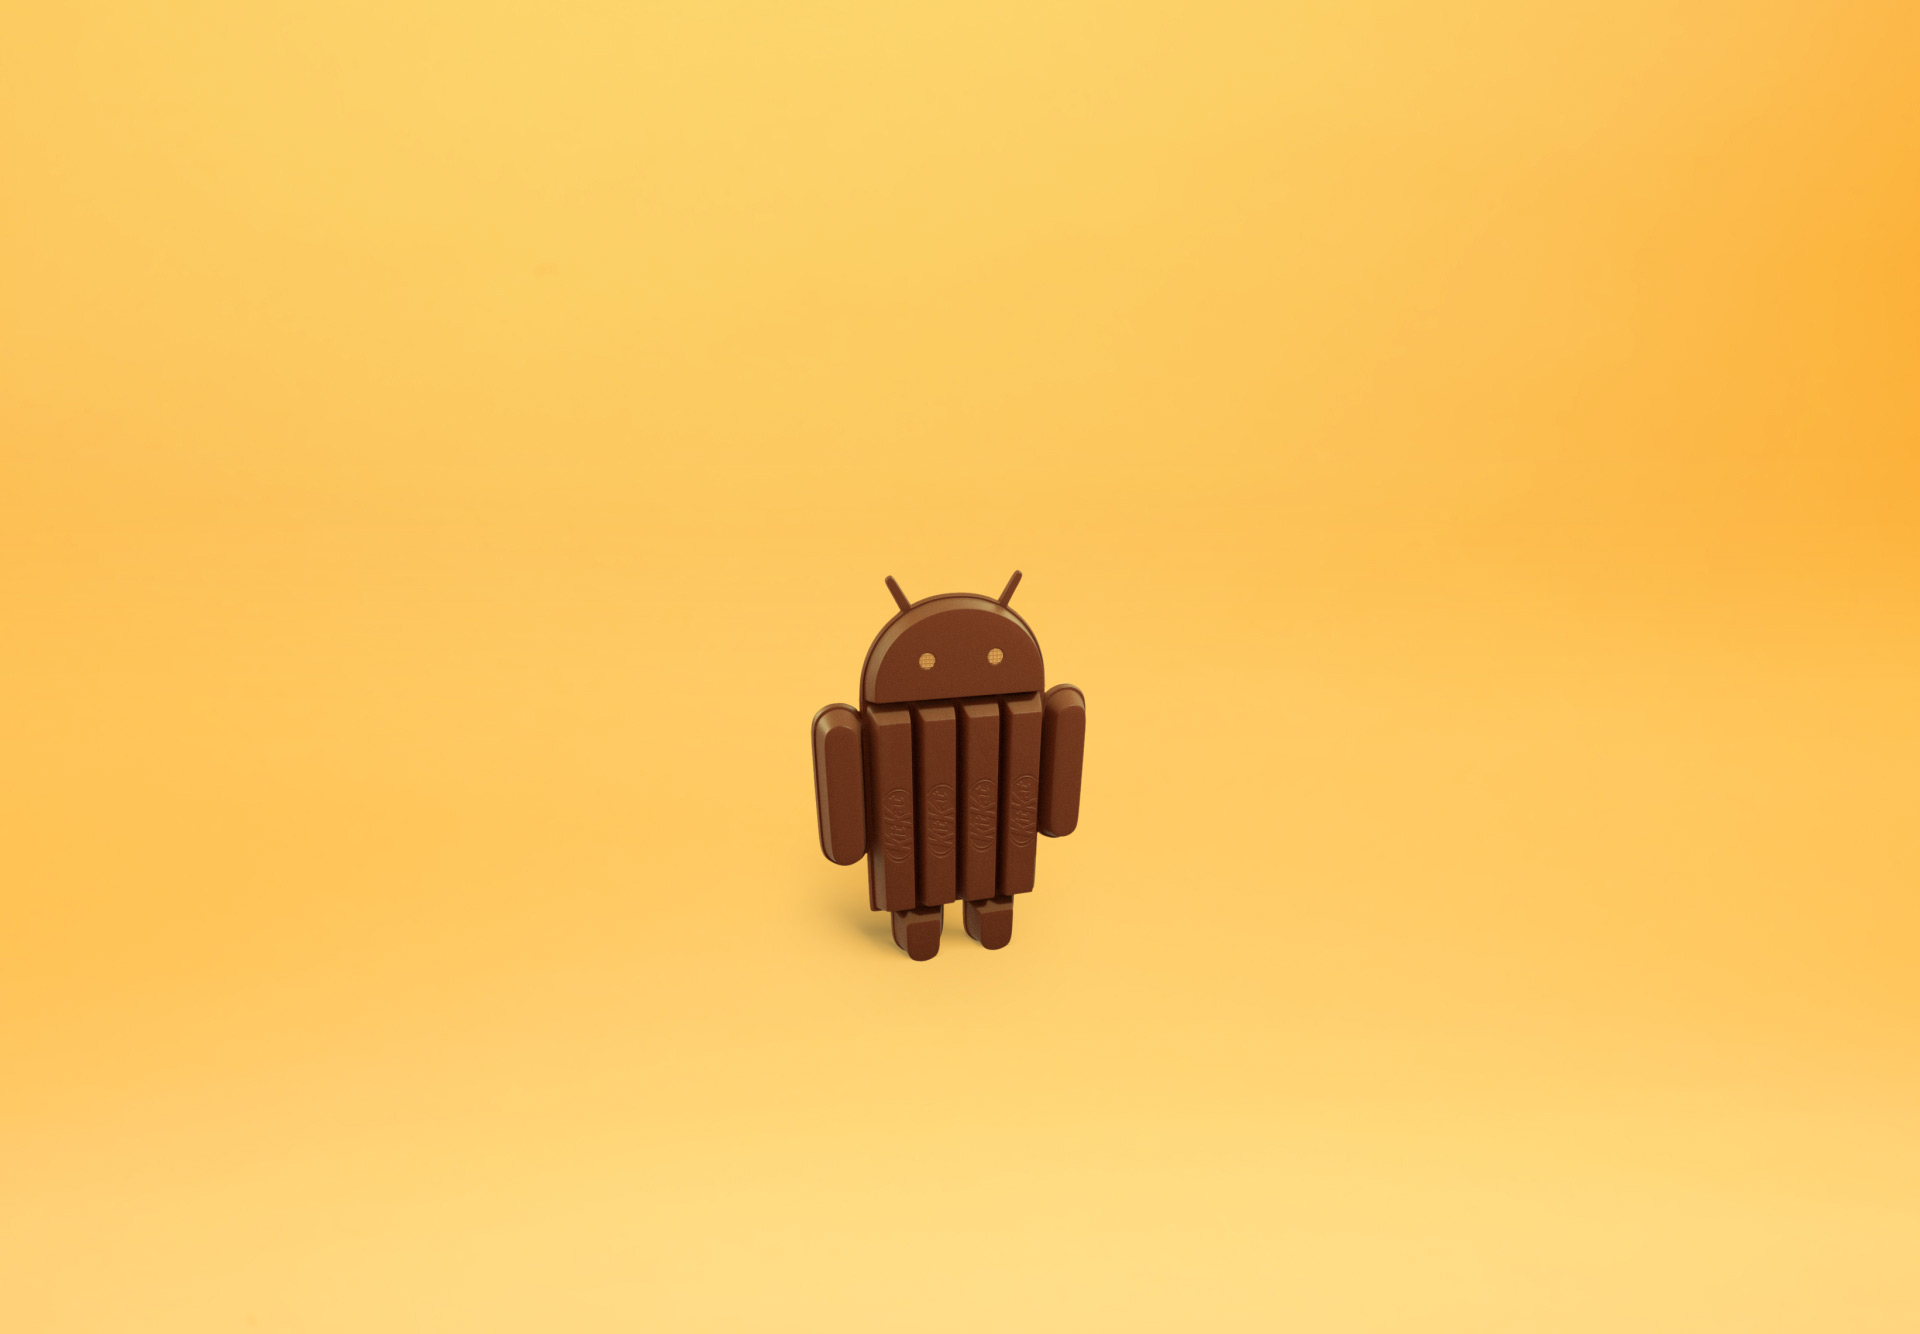 Android-4.4-KitKat-wallpaper